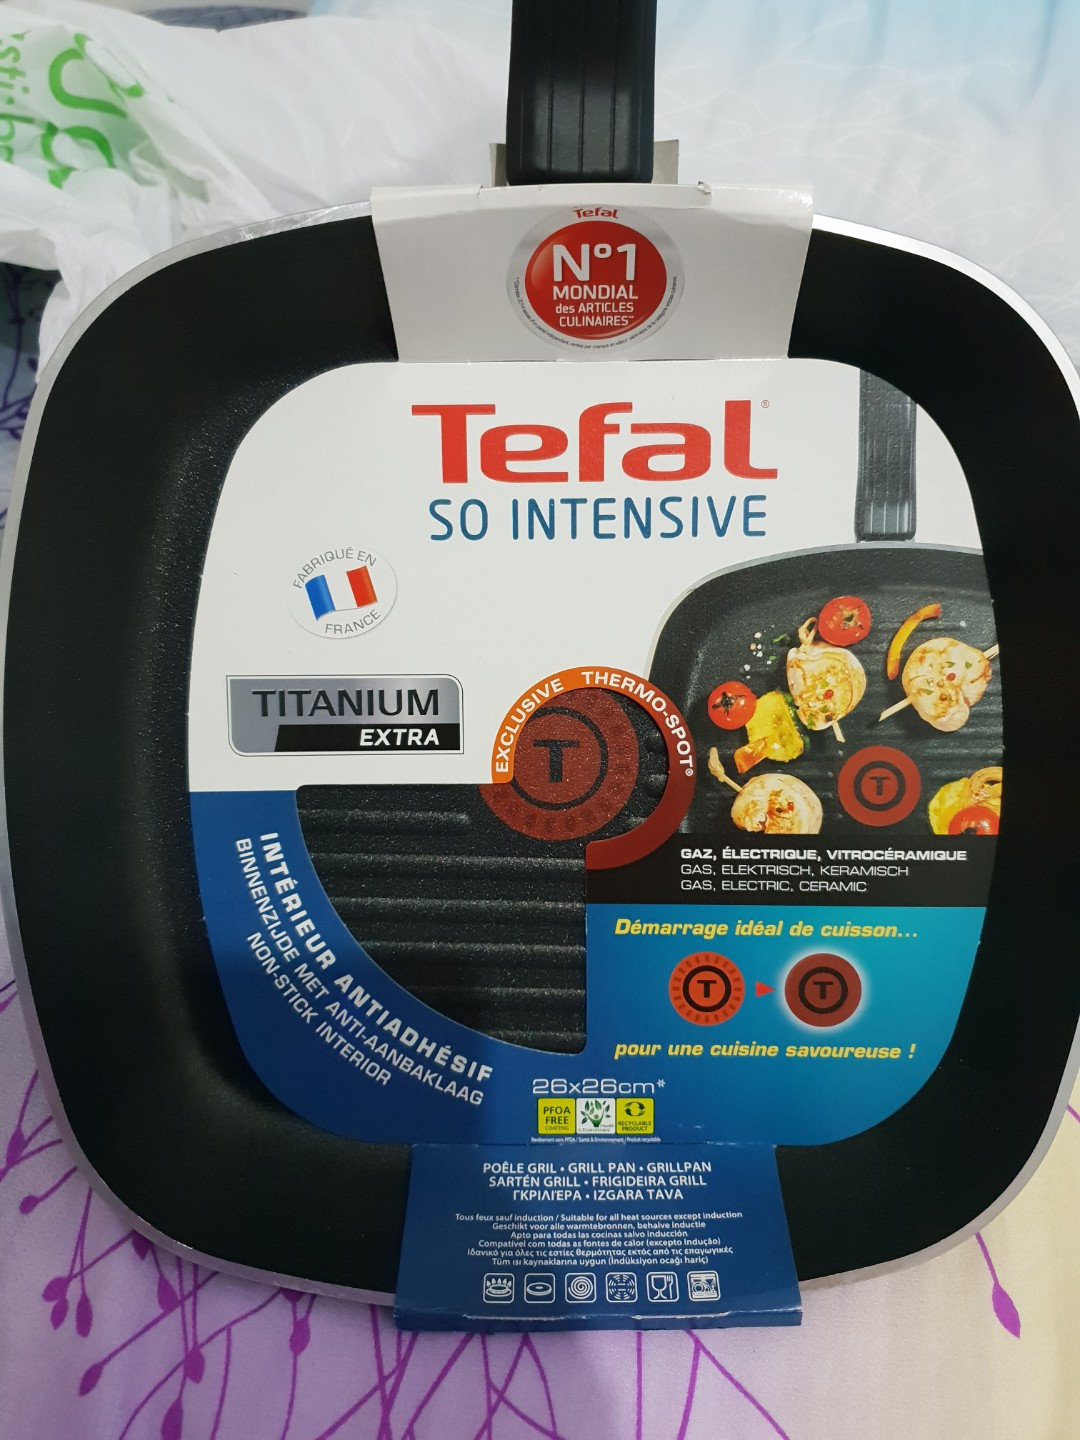 Tefal So Intensive Titanium Extra grill pan, Home Appliances